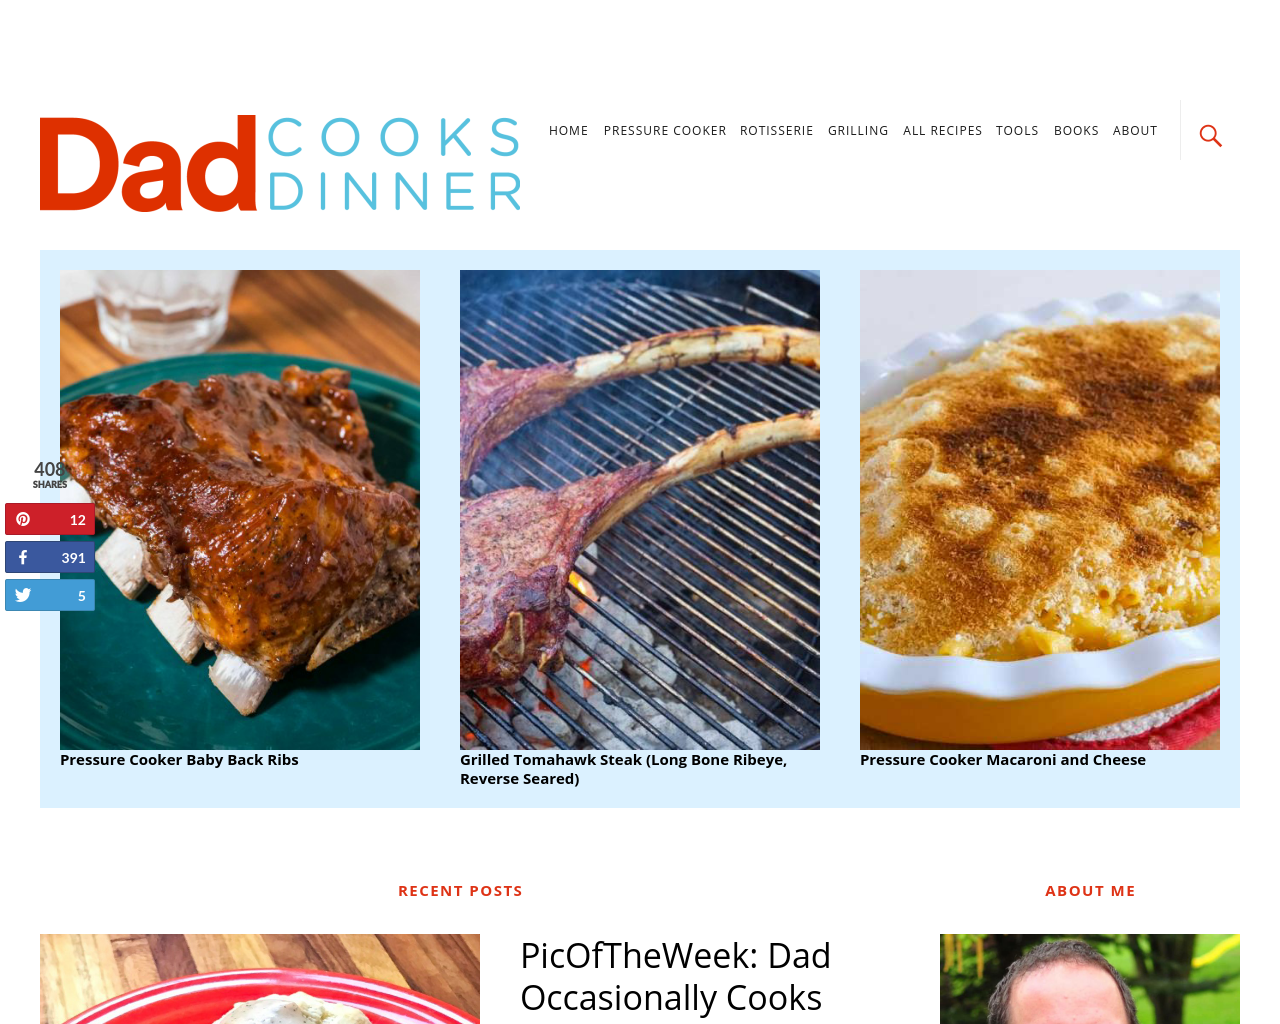 Dad-Cooks-Dinner-Advertising-Reviews-Pricing